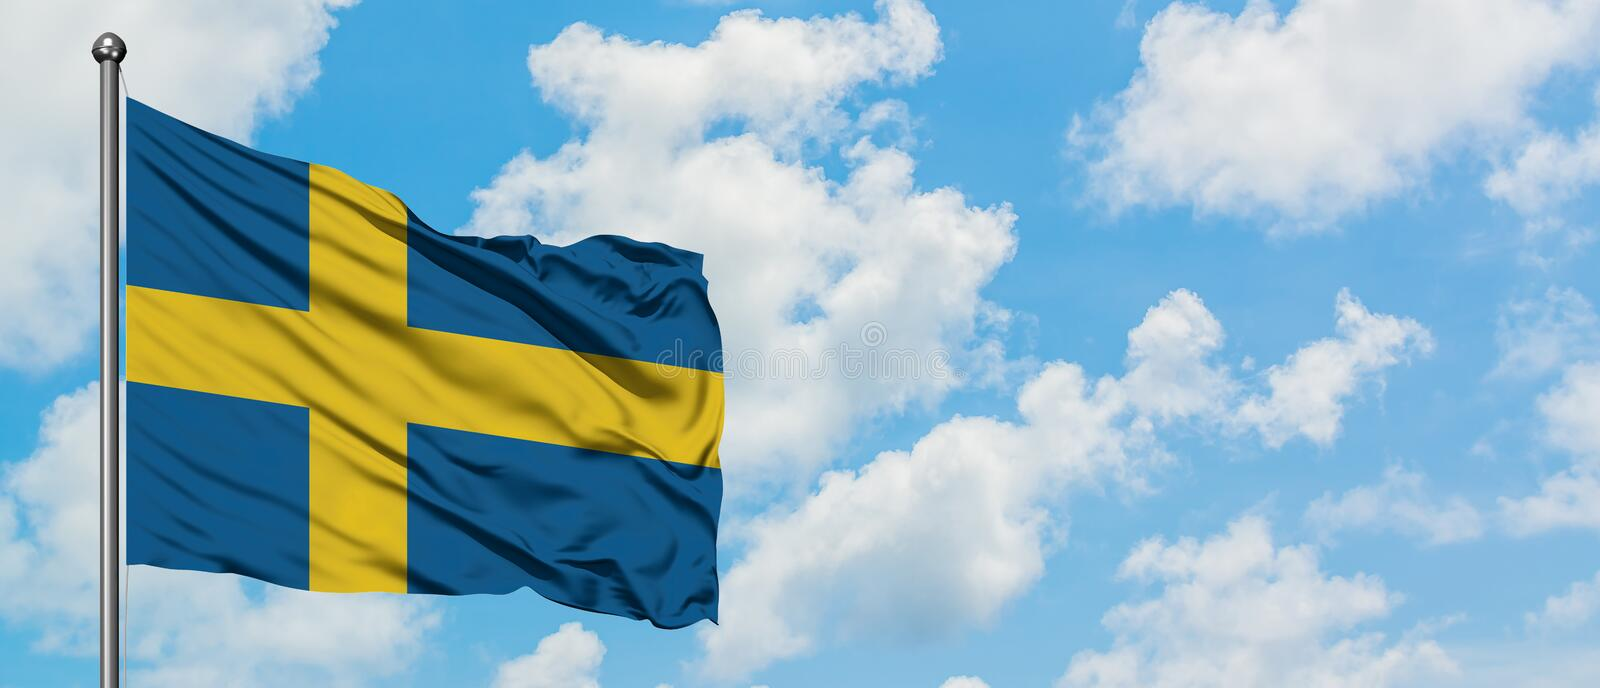 Sweden flag waving in the wind against white cloudy blue sky. Diplomacy concept, international relations.  stock photo